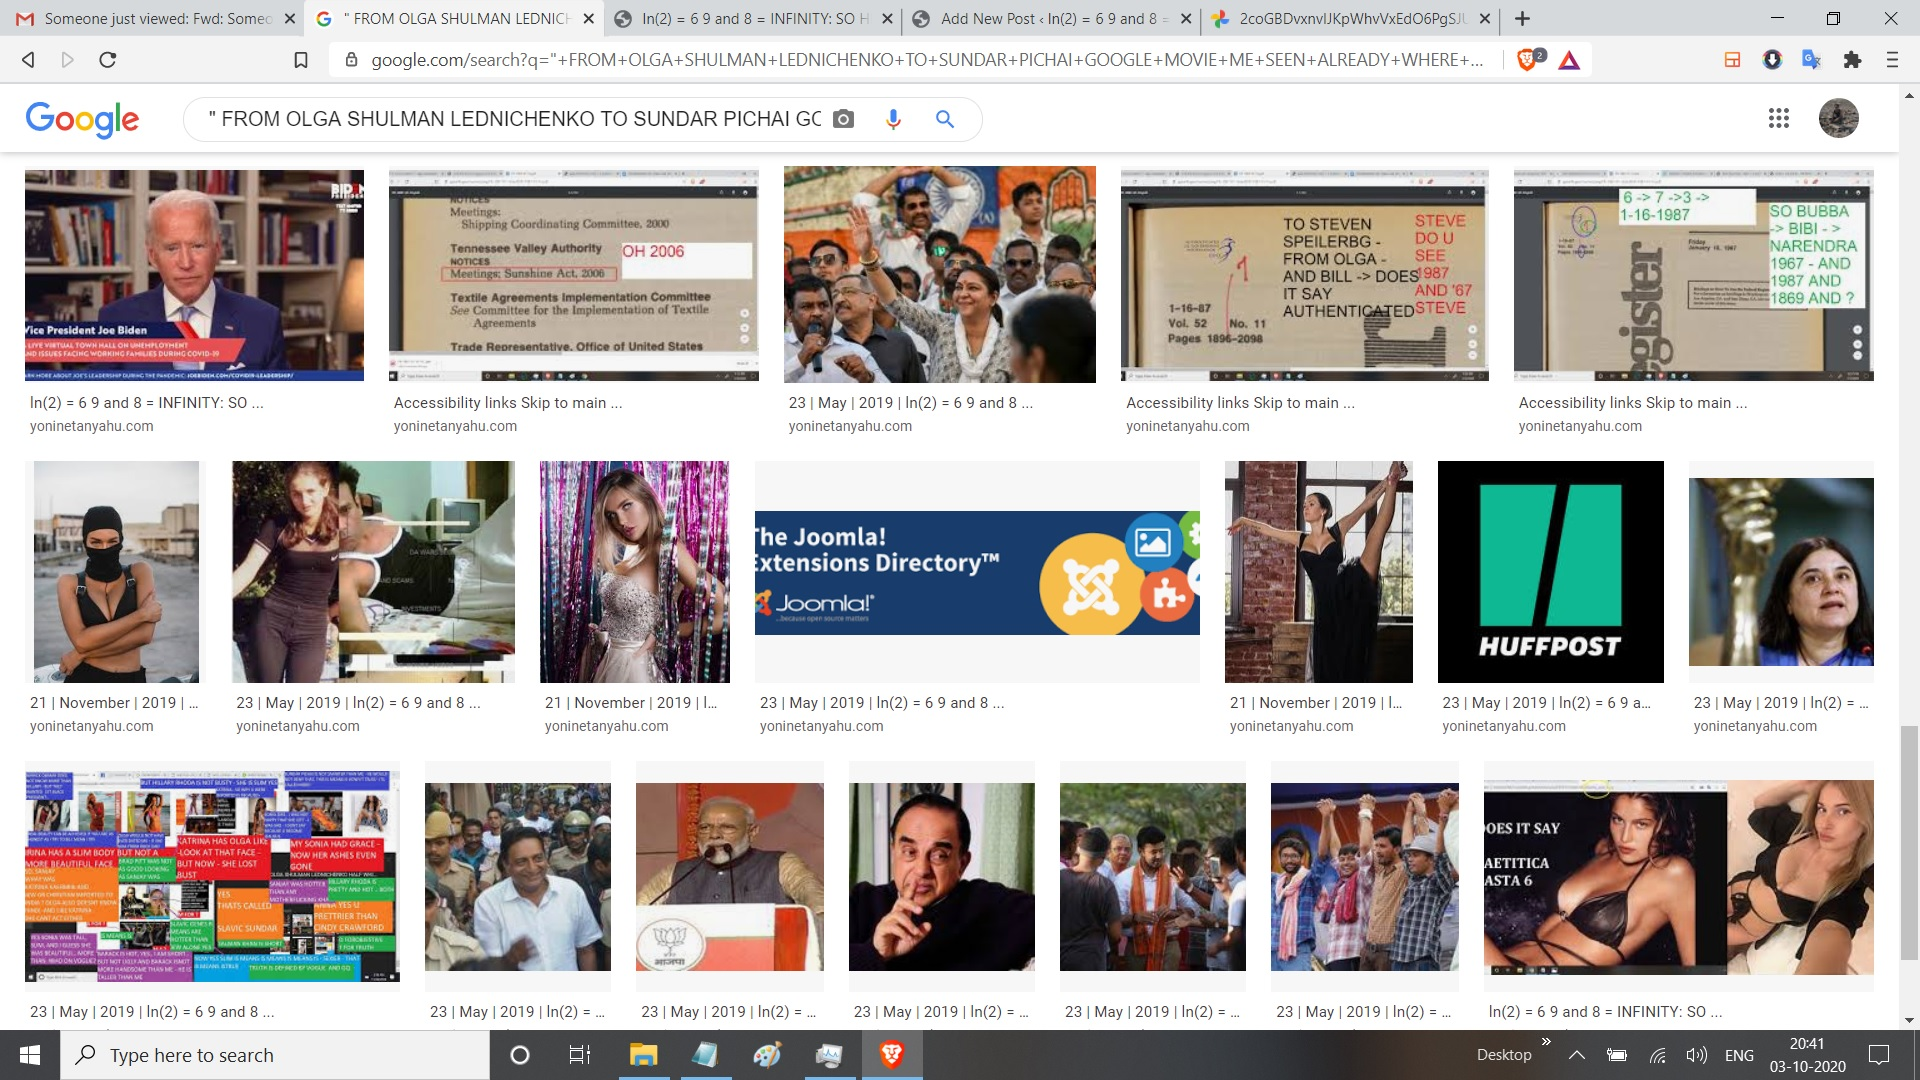 FROM OLGA SHULMAN LEDNICHENKO TO SUNDAR PICHAI GOOGLE MOVIE ME SEEN ALREADY WHERE MOST SEARCHED IN THE WORLD WAS MY LOOK ALIKE CALED KATRINA THE KASHMIRI MULSIM WITH KHANS AND THEN IT BECOME SUNNY PRON LEONE HAVE U SEEN MOVIE CALLED GOGOL SUNDAR